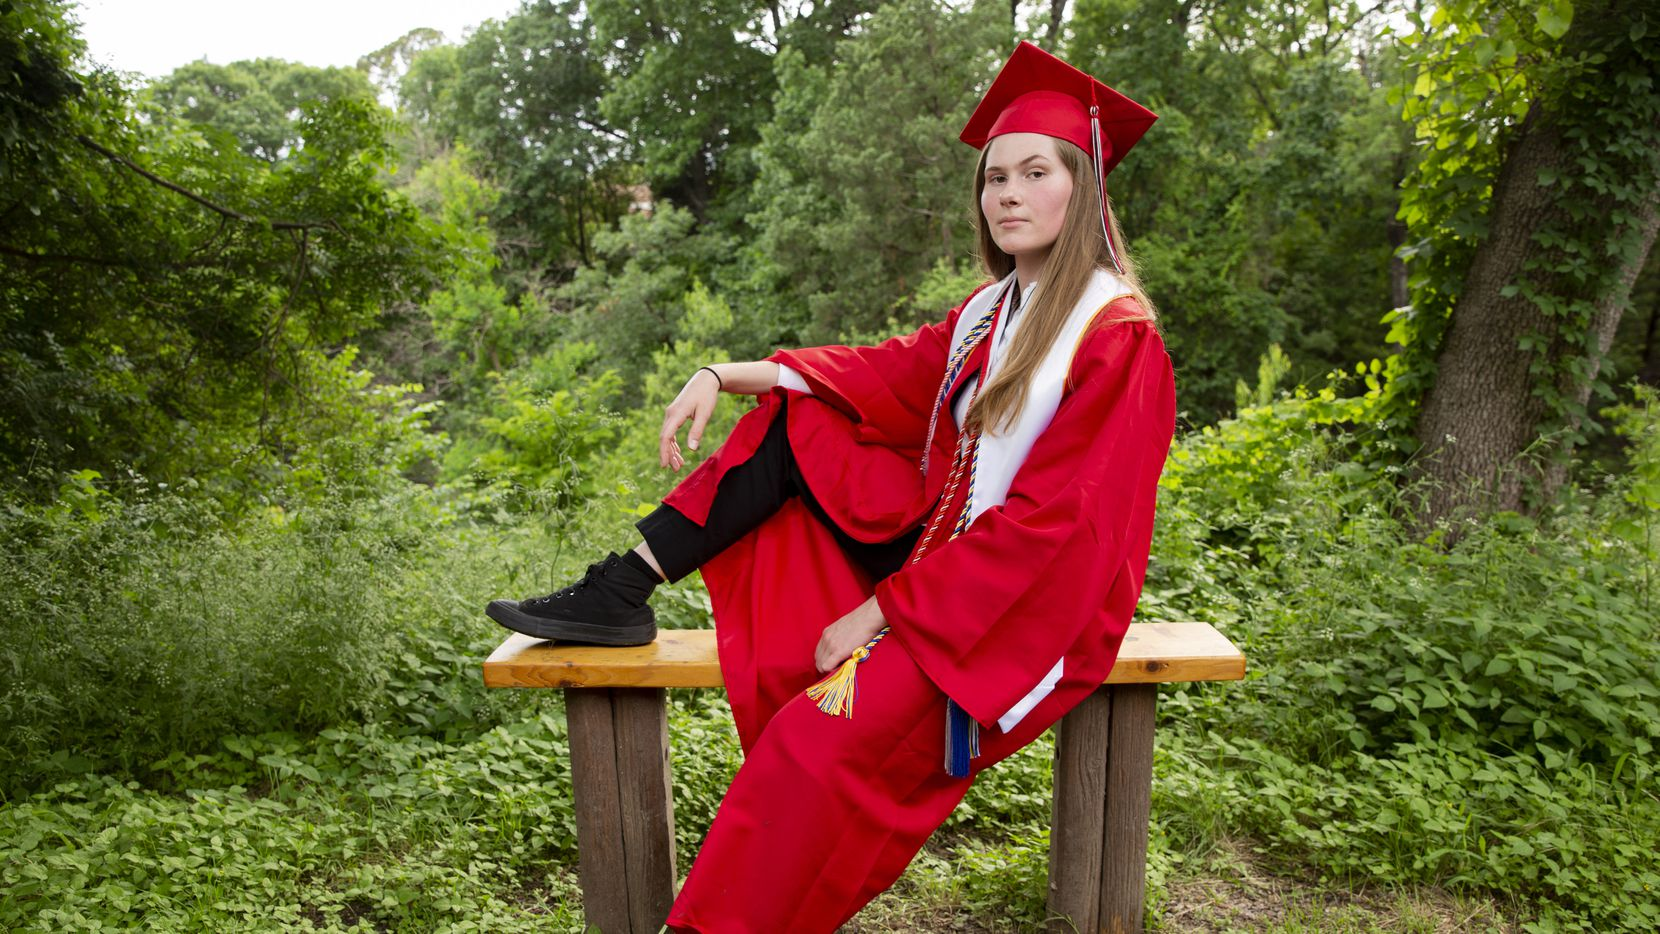 Paxton Smith, Lake Highlands High School valedictorian, poses for a photo on Wednesday, June 2, 2021, in Dallas. (Juan Figueroa/The Dallas Morning News)